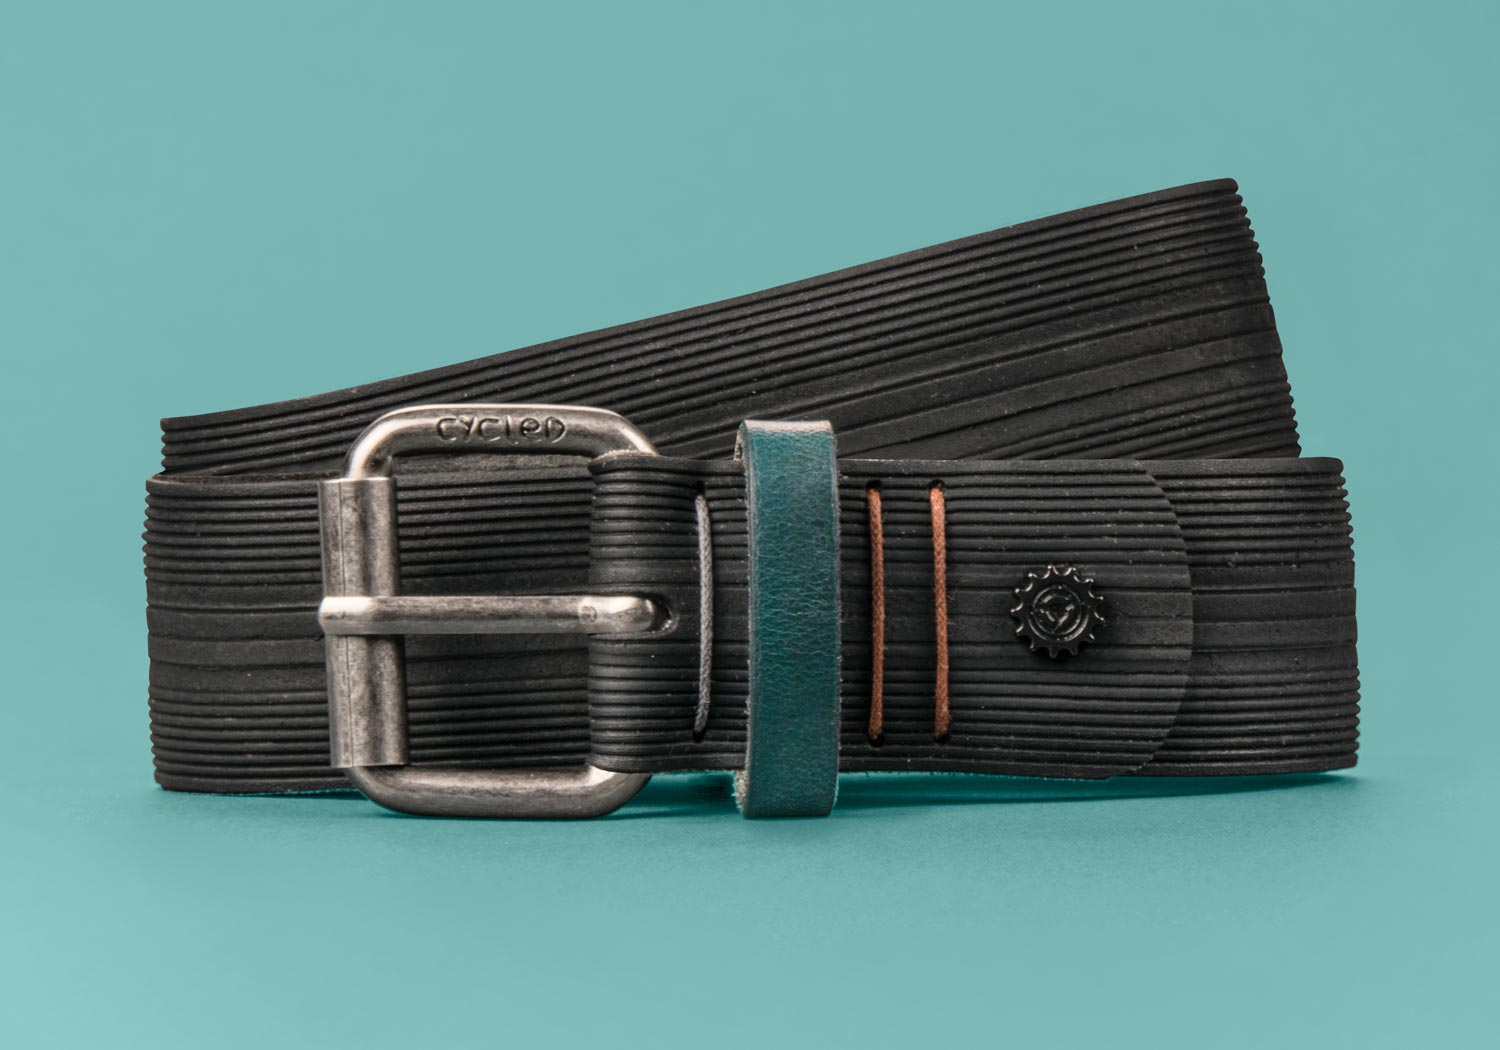 core-belts-cycled